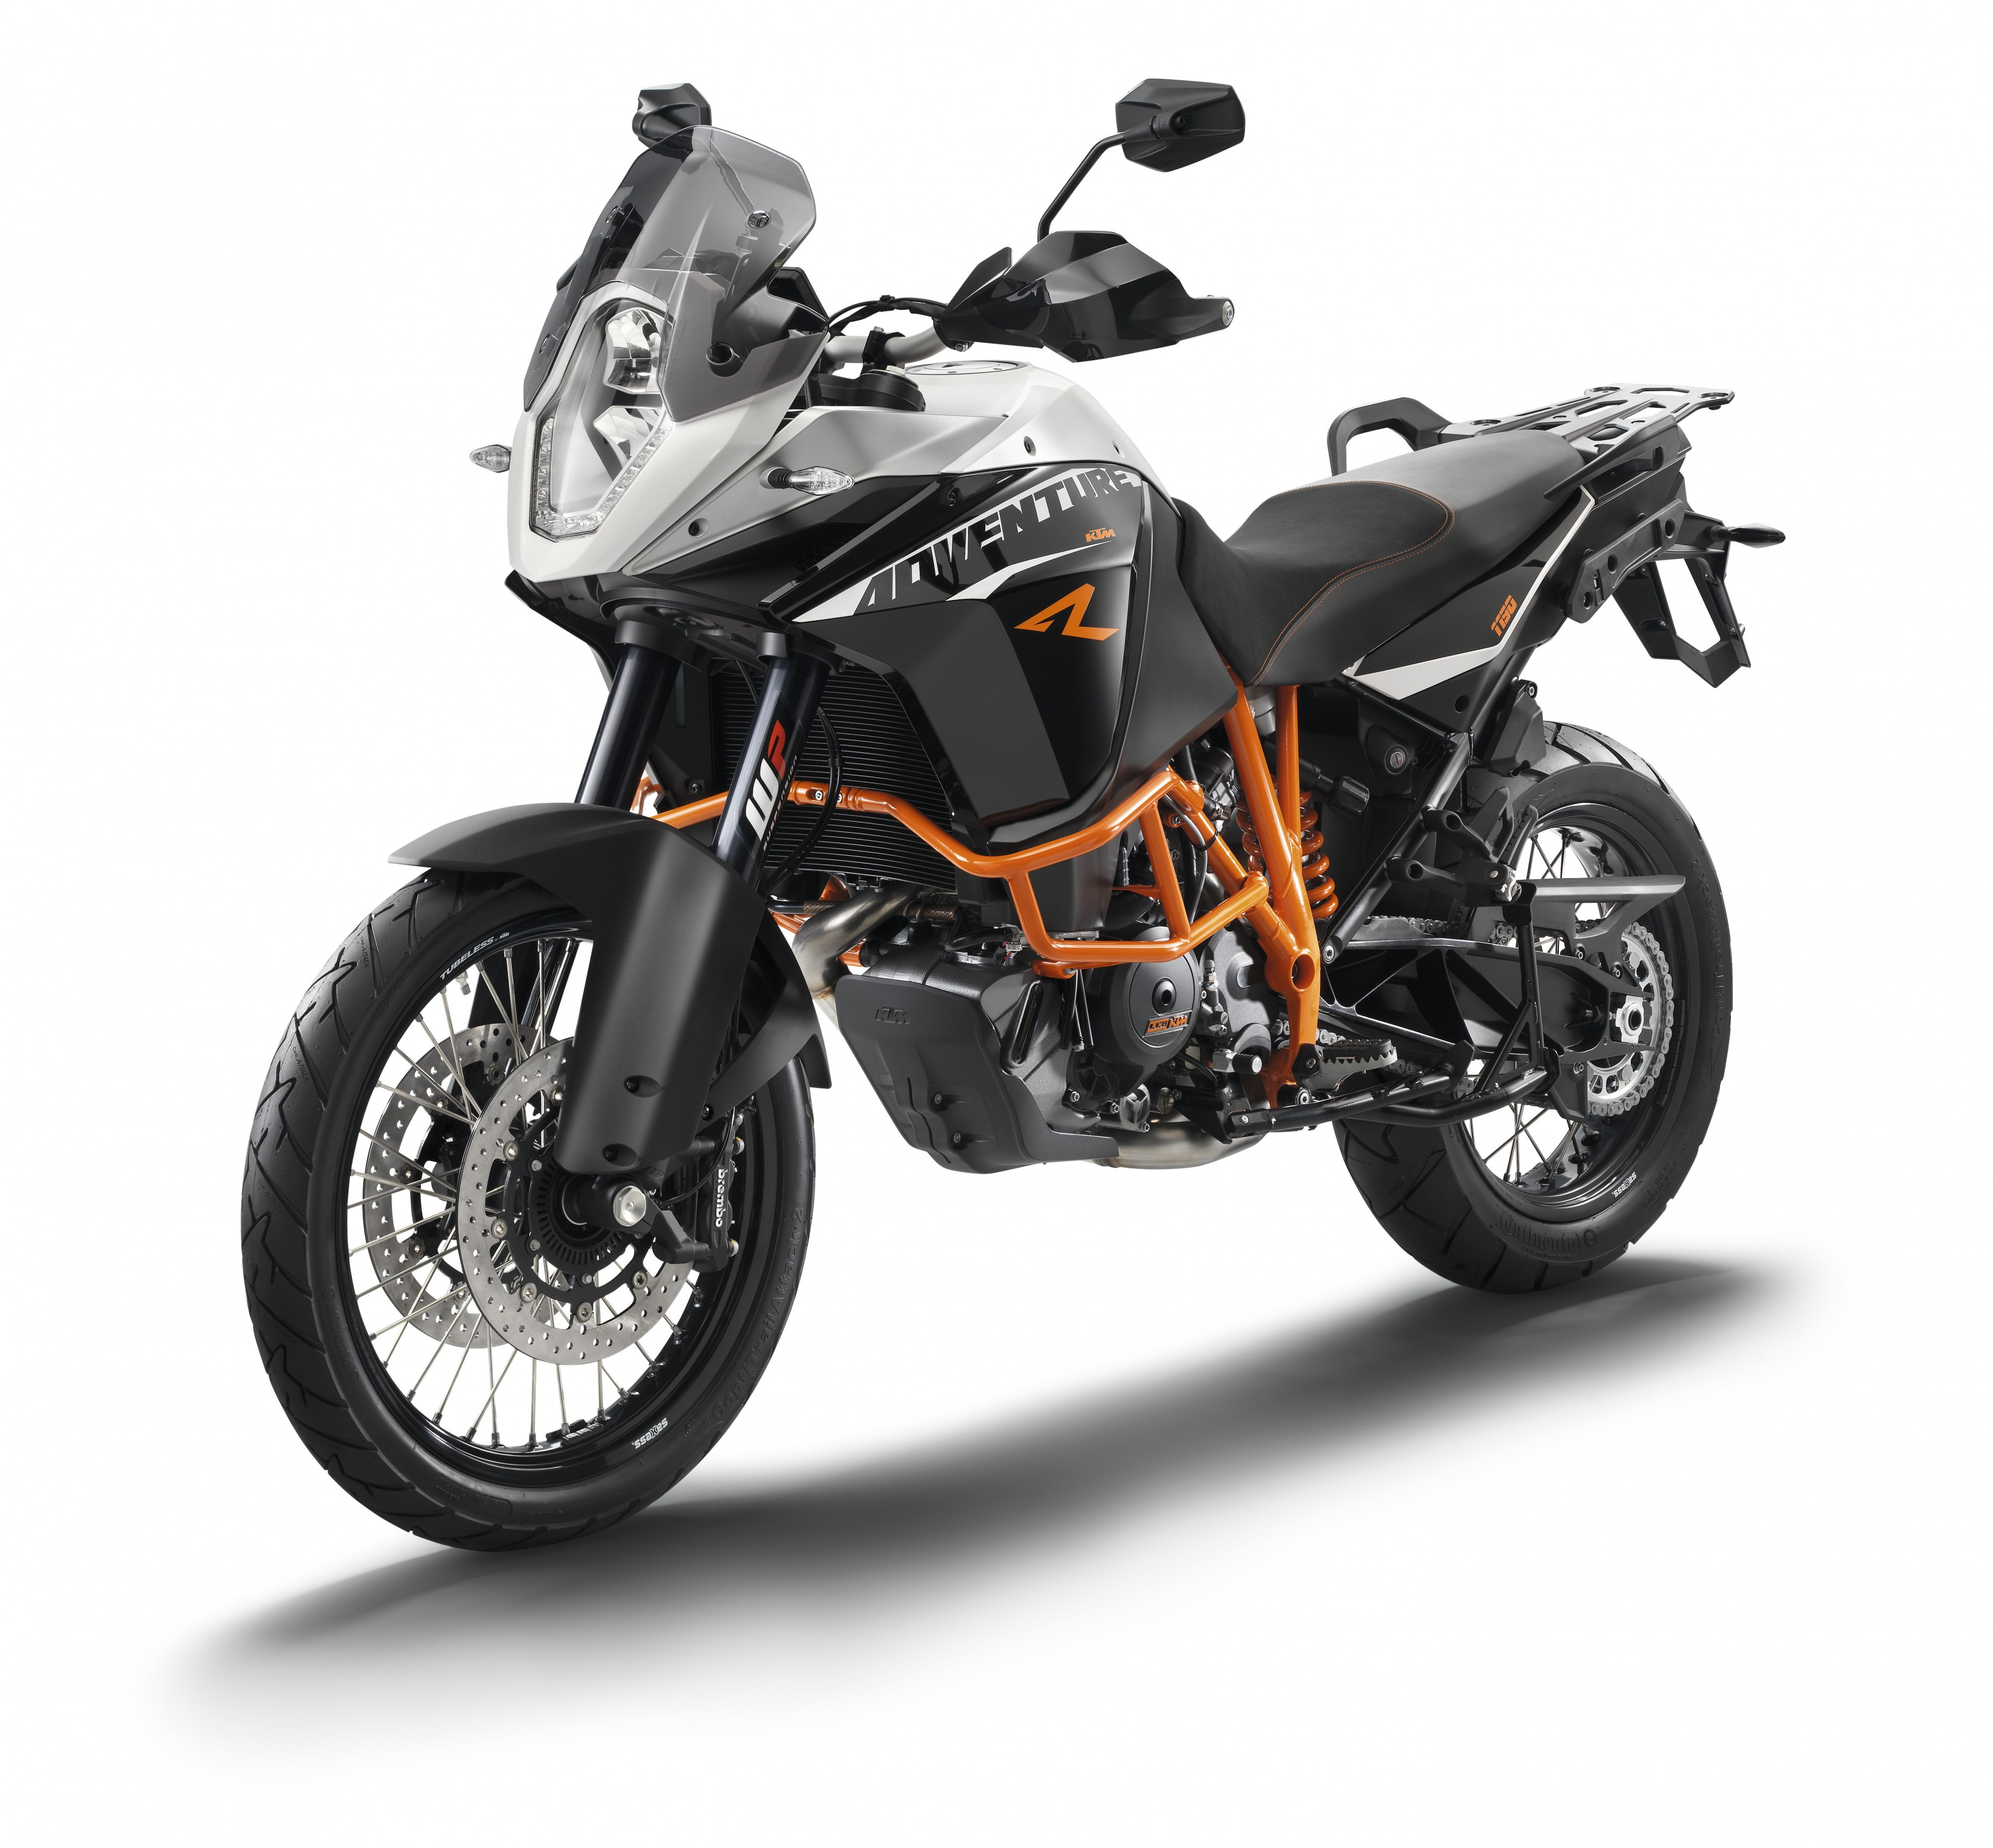 KTM UK offers further £1,000 discount on trade-in for new 1190 Adventure models